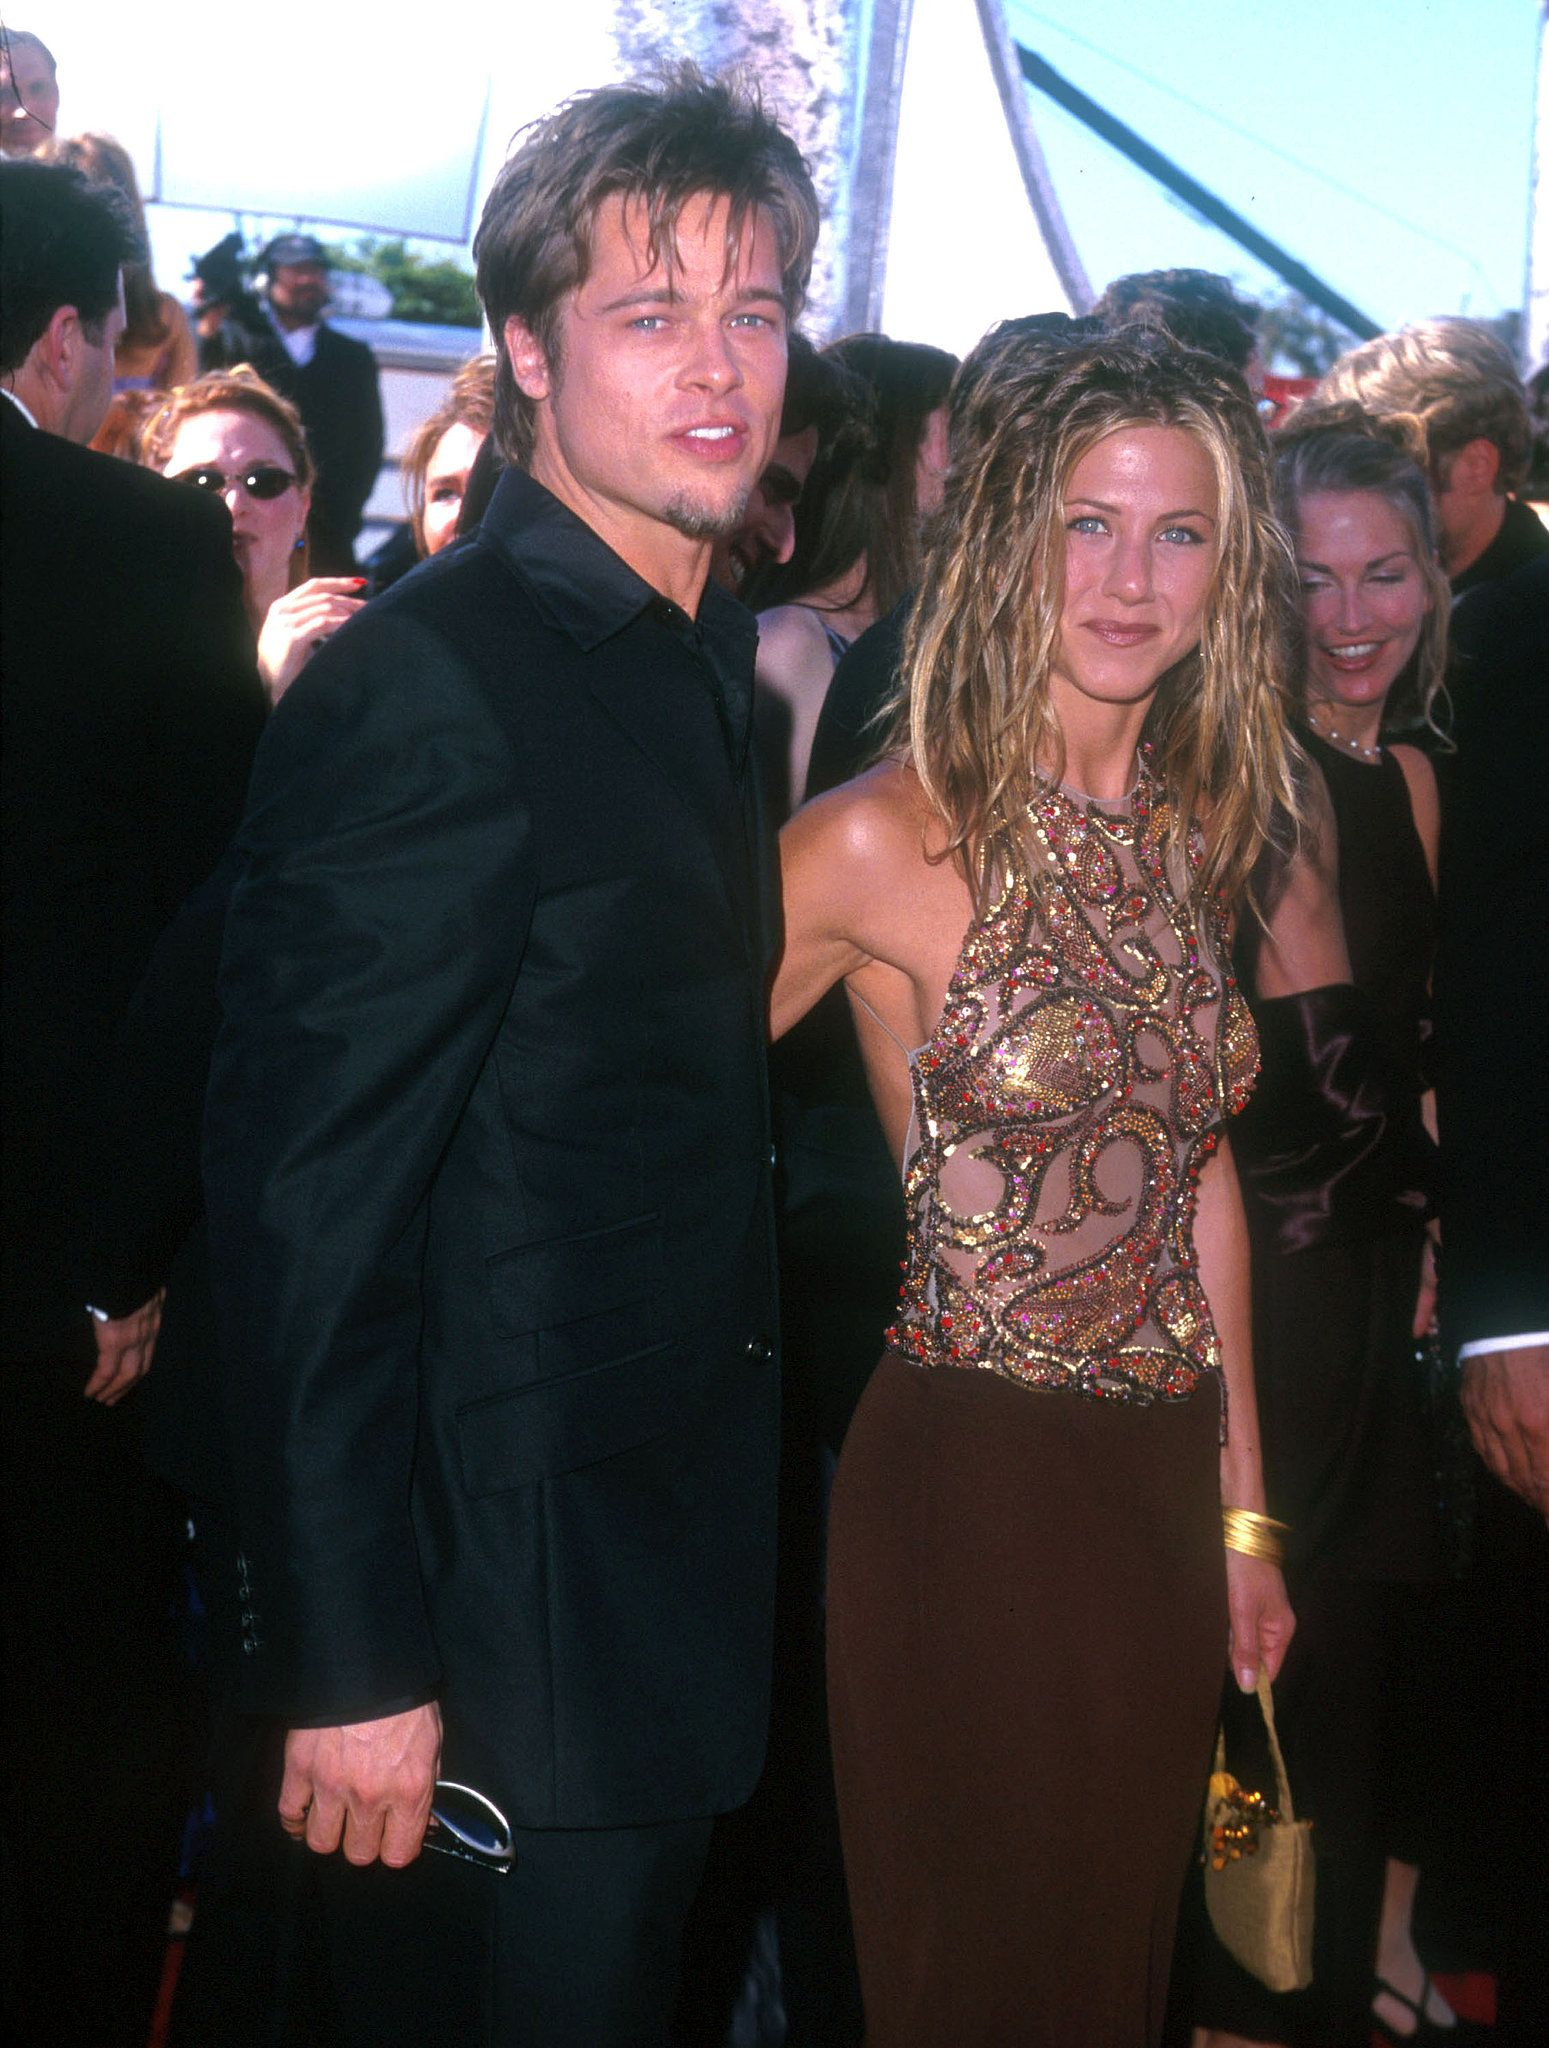 brad-pitt-was-accompanied-by-then-wife-jennifer-aniston-at-the-emmys-in-september-1999